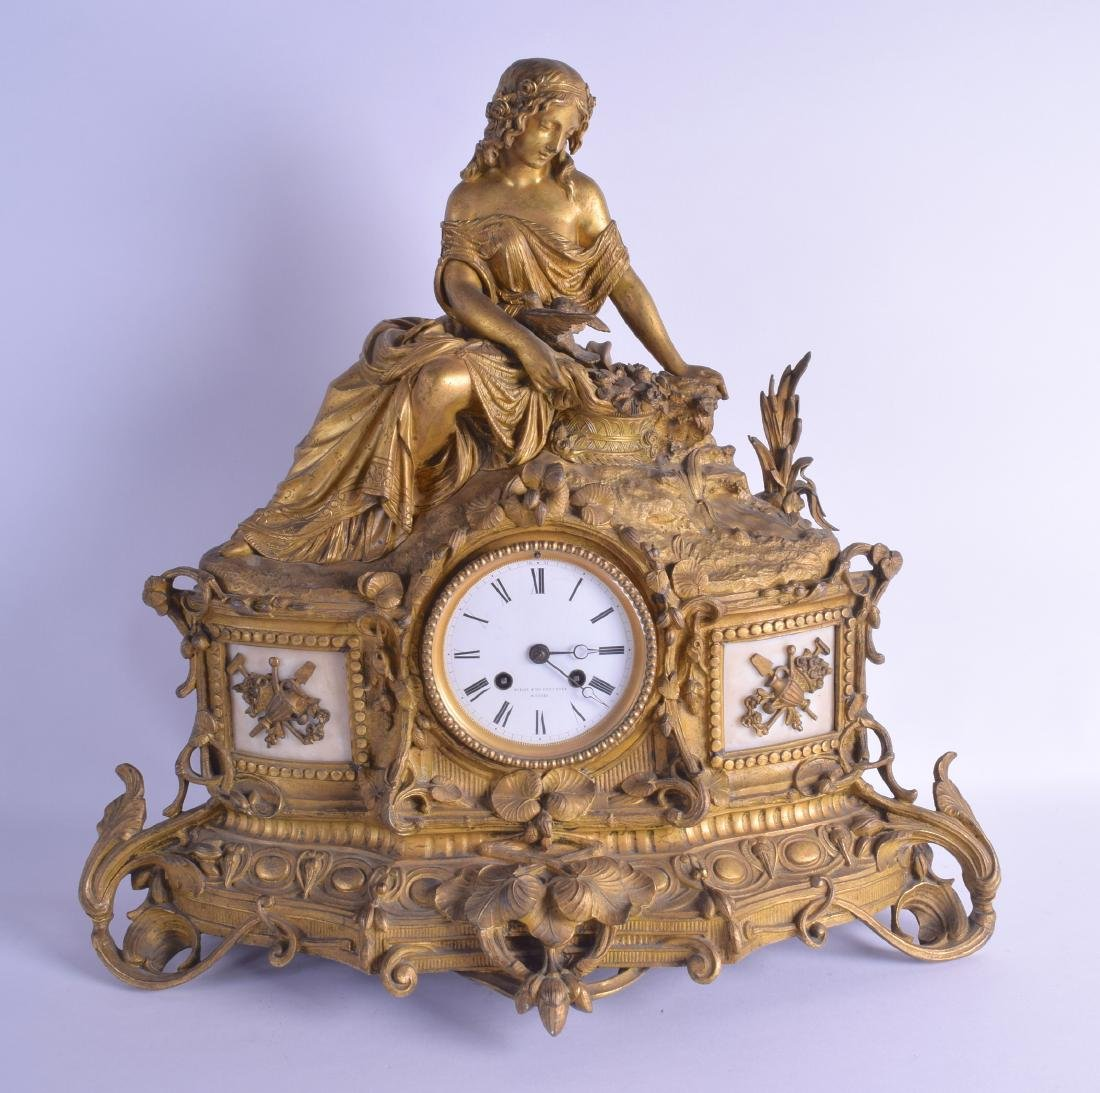 A LARGE 19TH CENTURY FRENCH GILT METAL MANTEL CLOCK